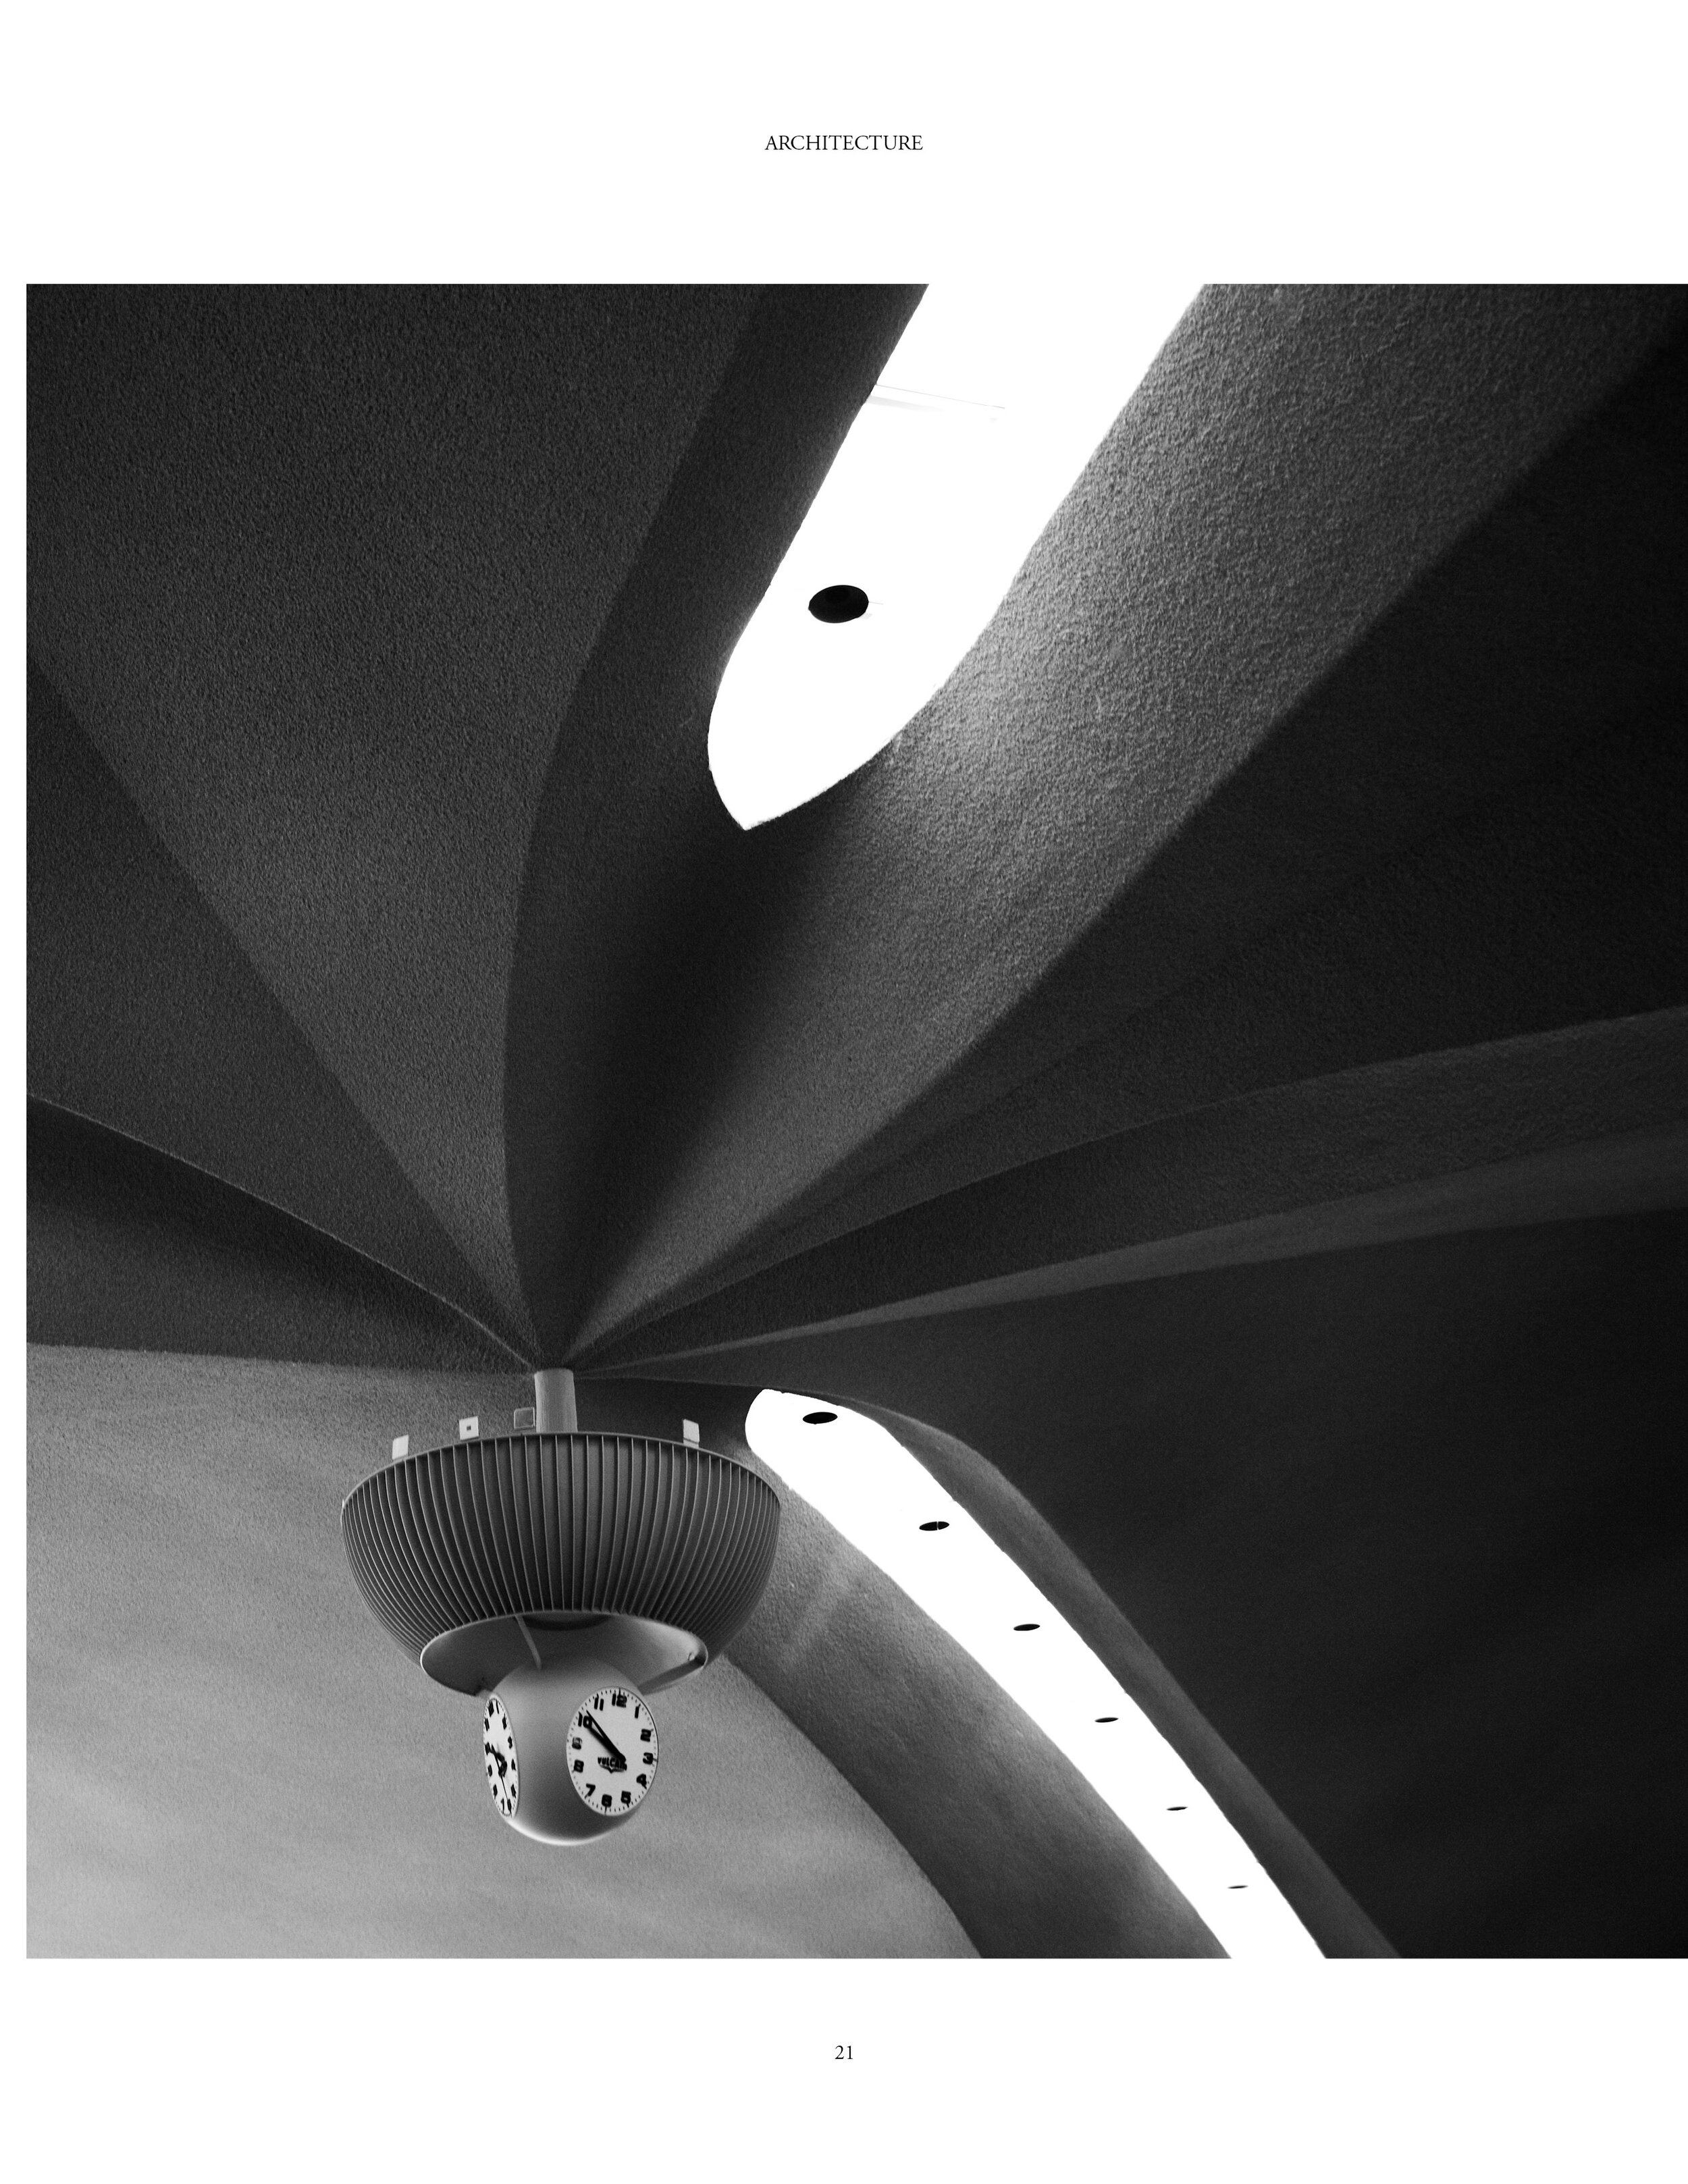 In the center of the terminal's ceiling, a Swiss Vulcain clock ticks on. The fully restored terminal houses the TWA Hotel's lobby, conference facilities and several restaurants and bars, including the original Paris Café. Saarinen's famous tubular passageways connect the building to the new terminal surrounding it.